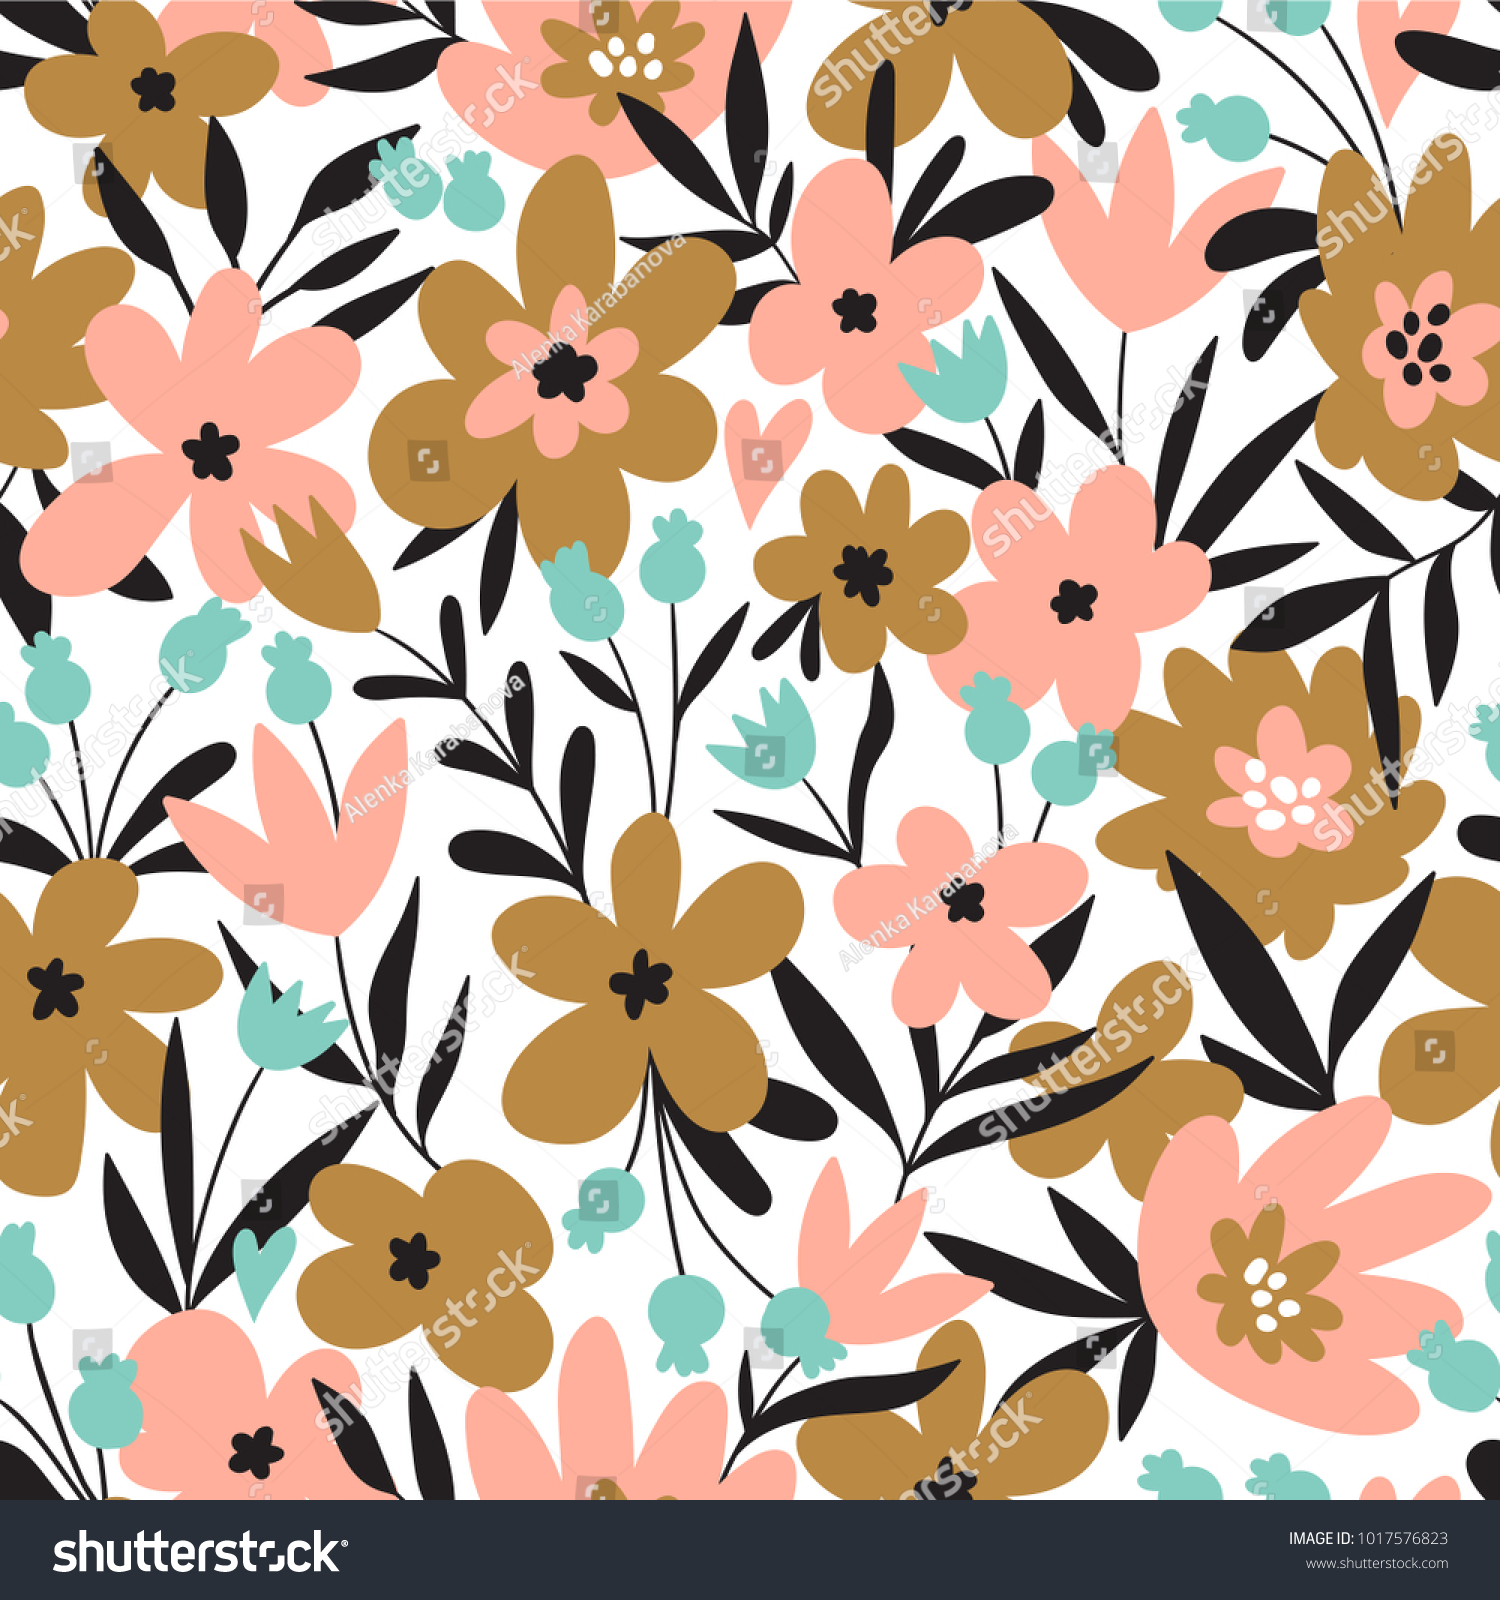 Trendy Seamless Floral Ditsy Pattern Fabric Design With Simple Flowers Vector Cute Repeated